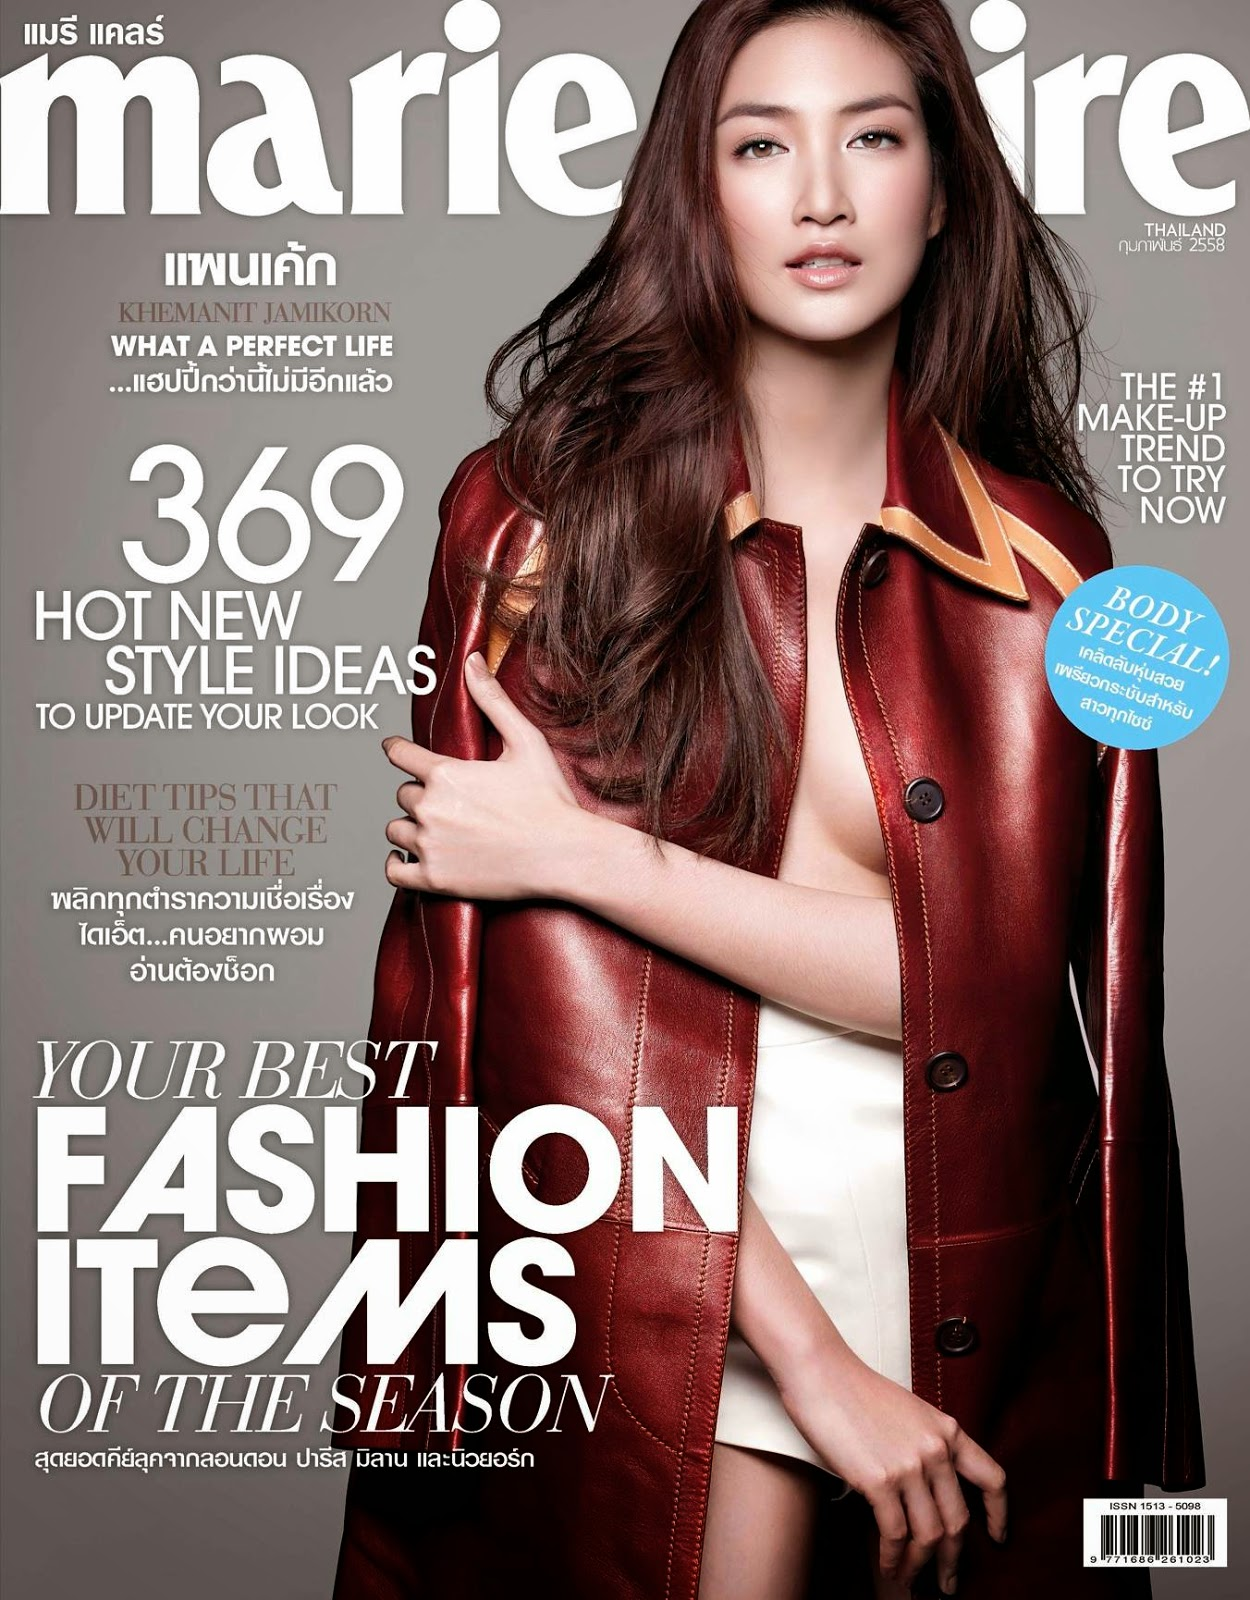 Model, Actress: Khemanit Jamikorn for Marie Claire Thailand